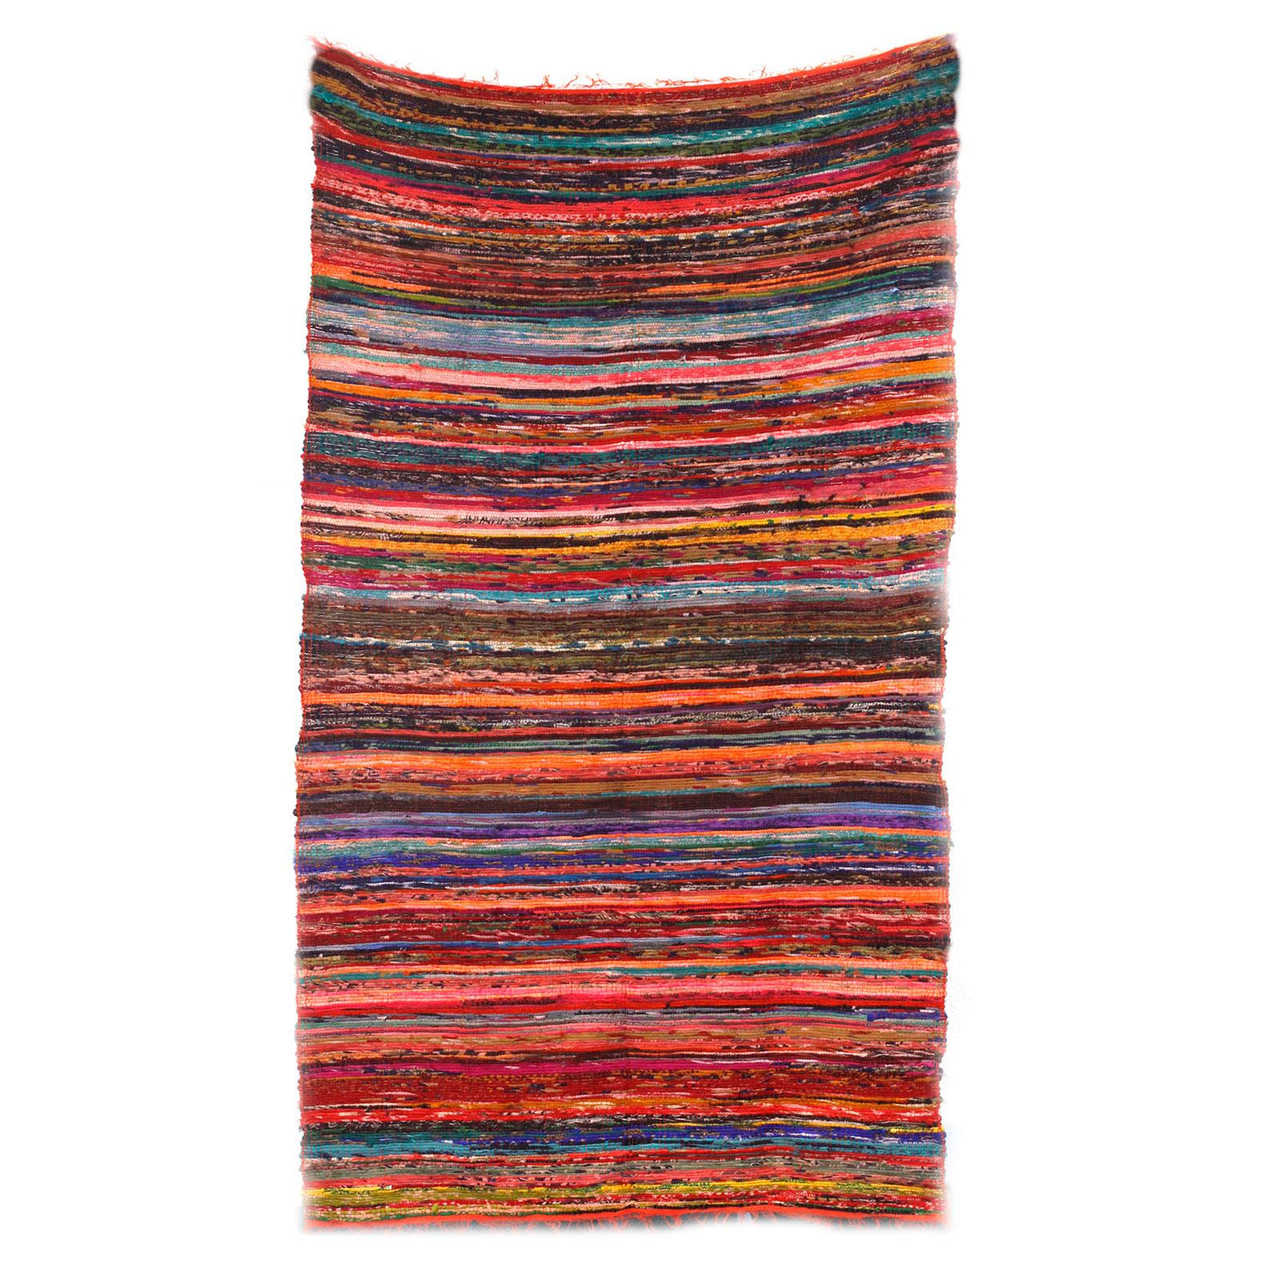 Luxury Rag Rug - Recycled Material - 150cm x 90cm - Hand Woven - Orange